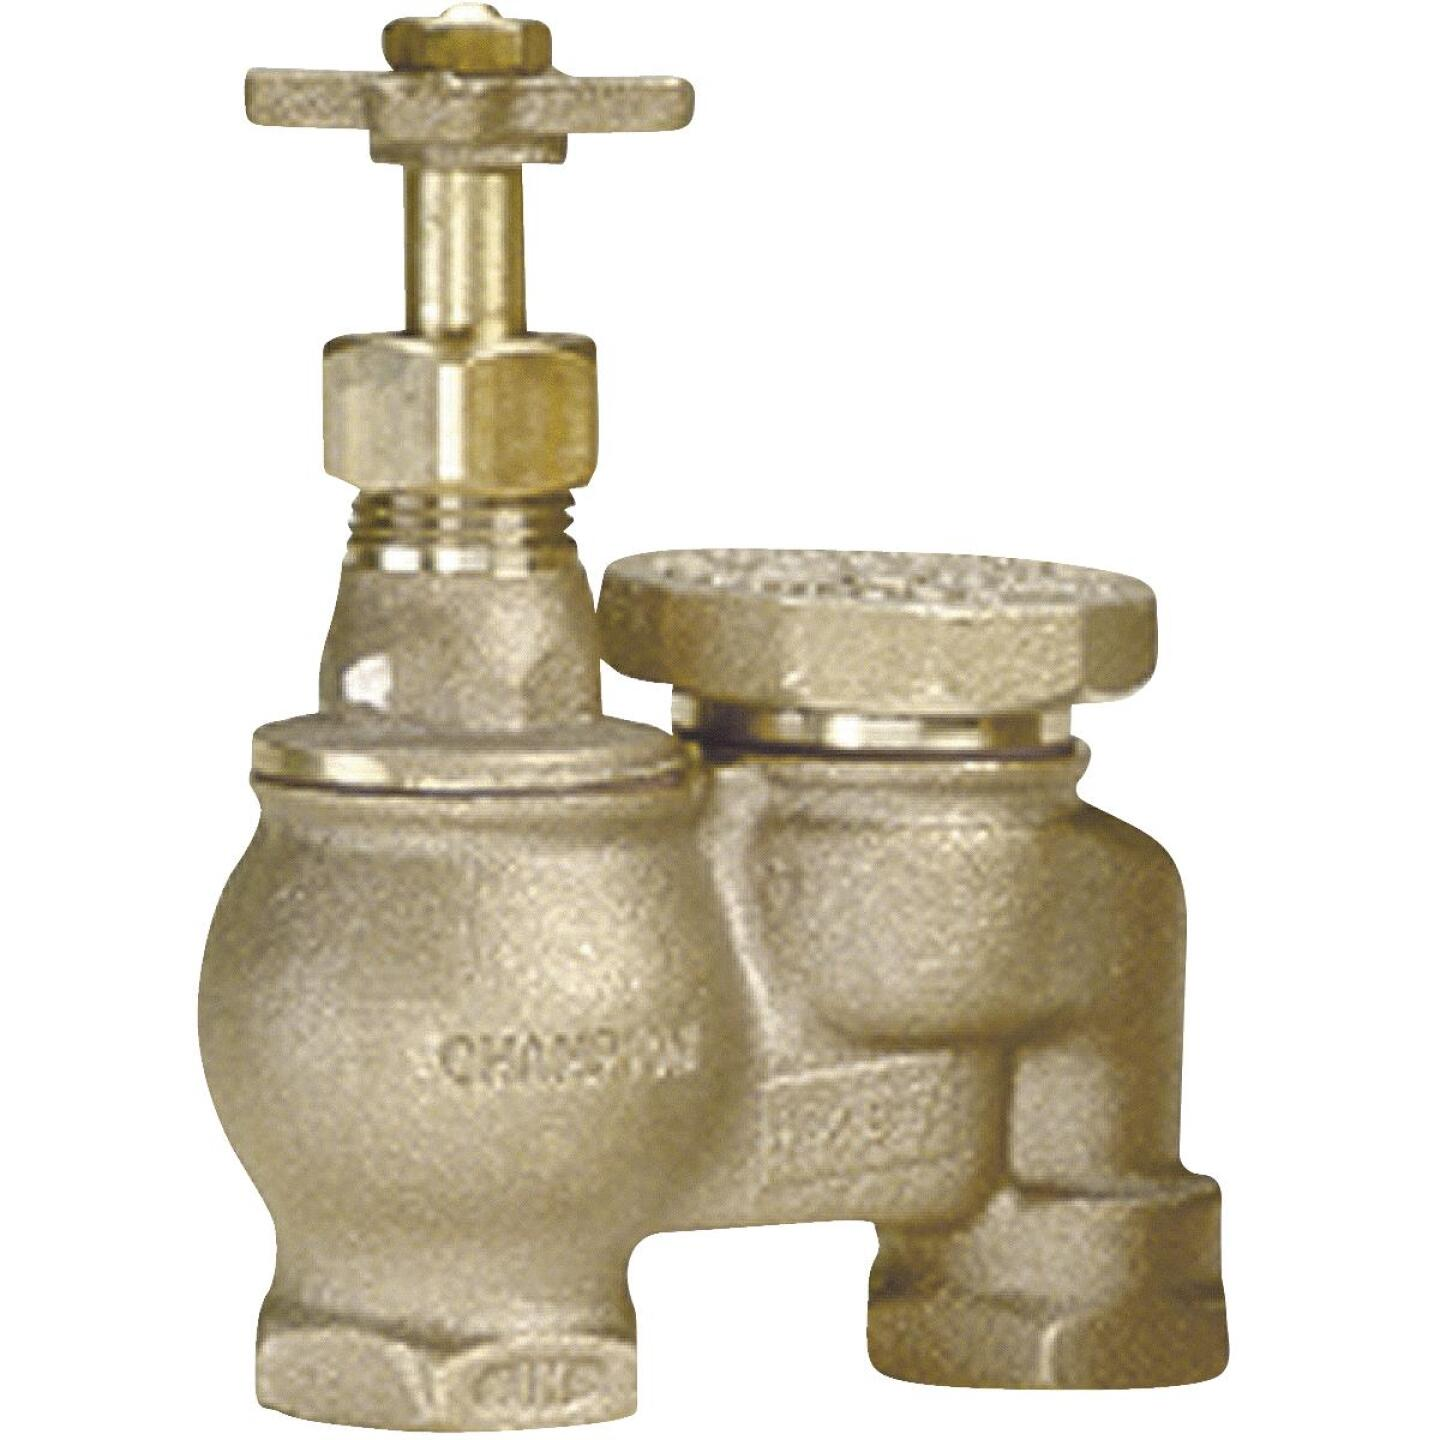 Champion 1 In. 25 to 150 psi Anti-Siphon Valve Image 1